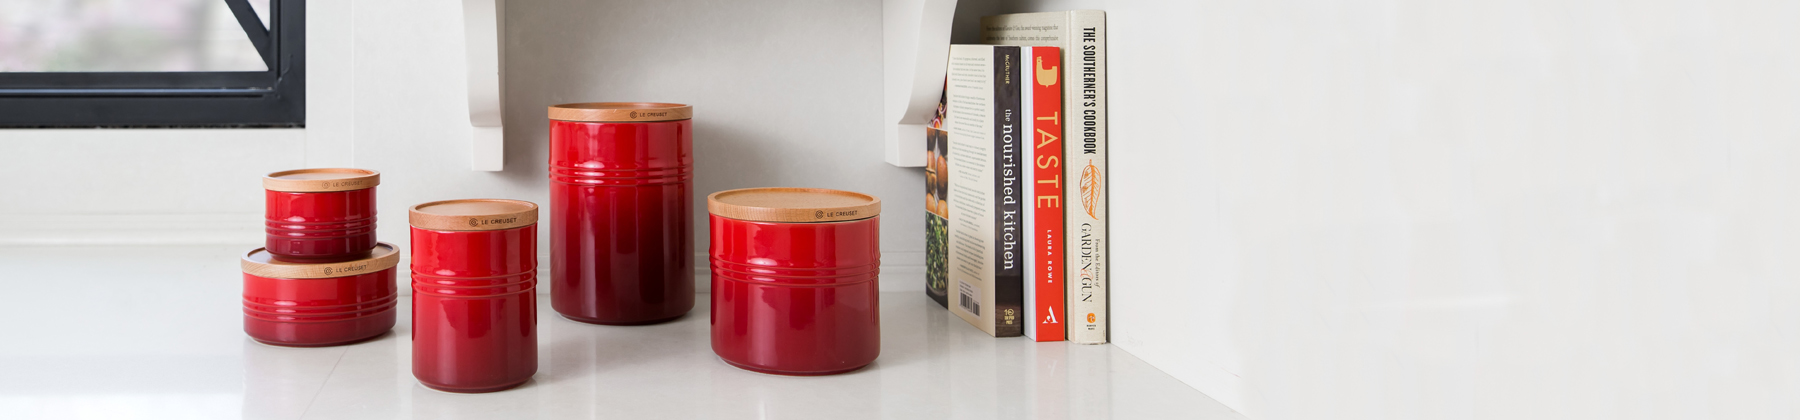 Countertop showcasing Le Creuset red canisters, books, and candles.